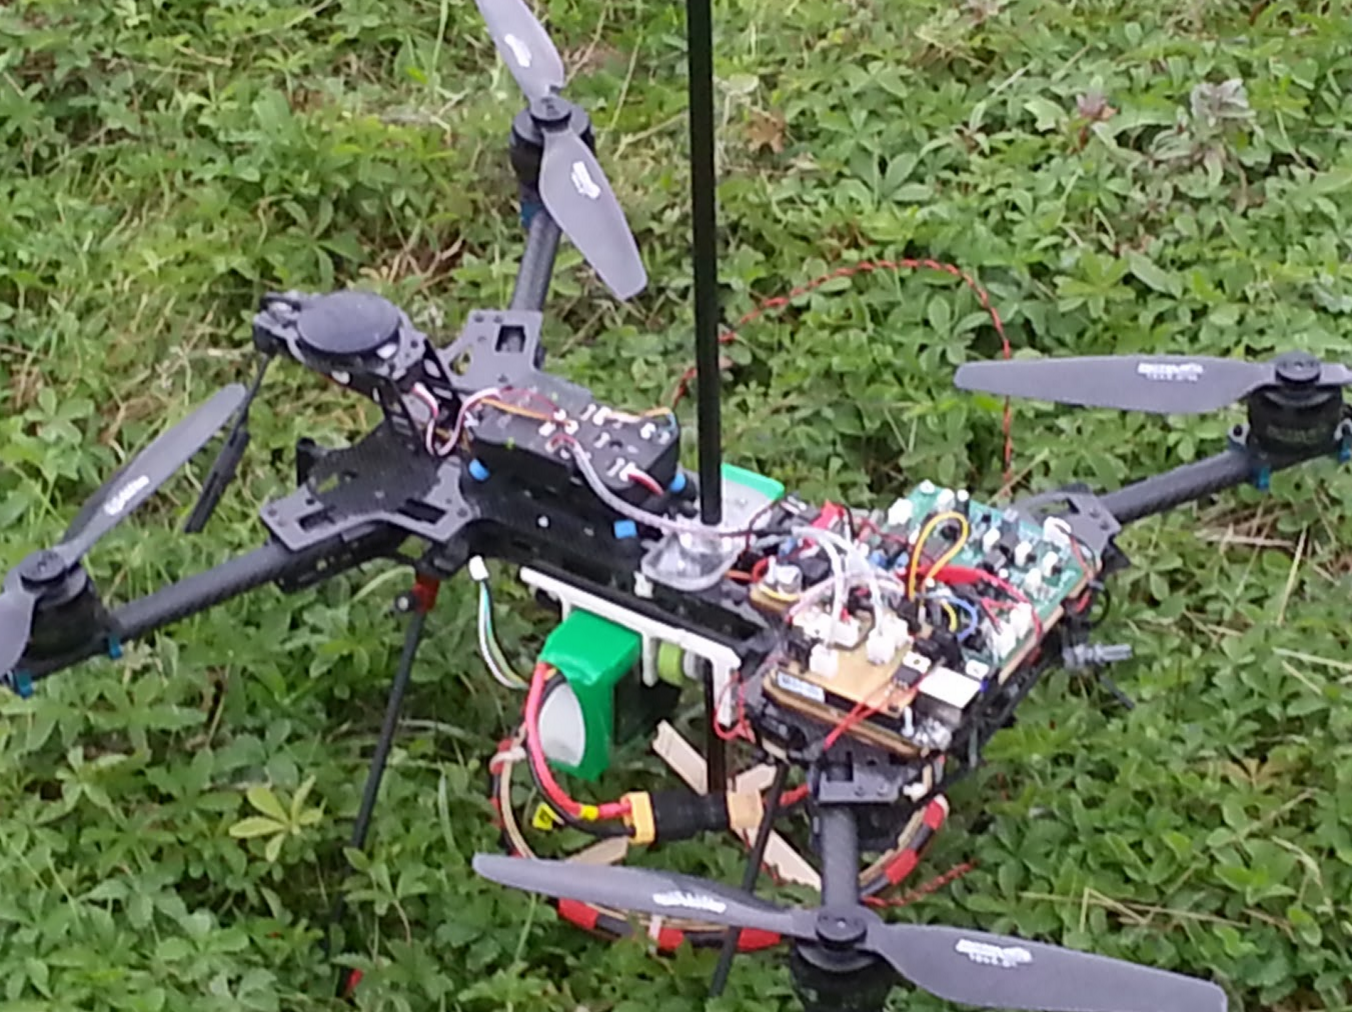 Drone Based Metal Detector Proof Of Concept Machine Doing